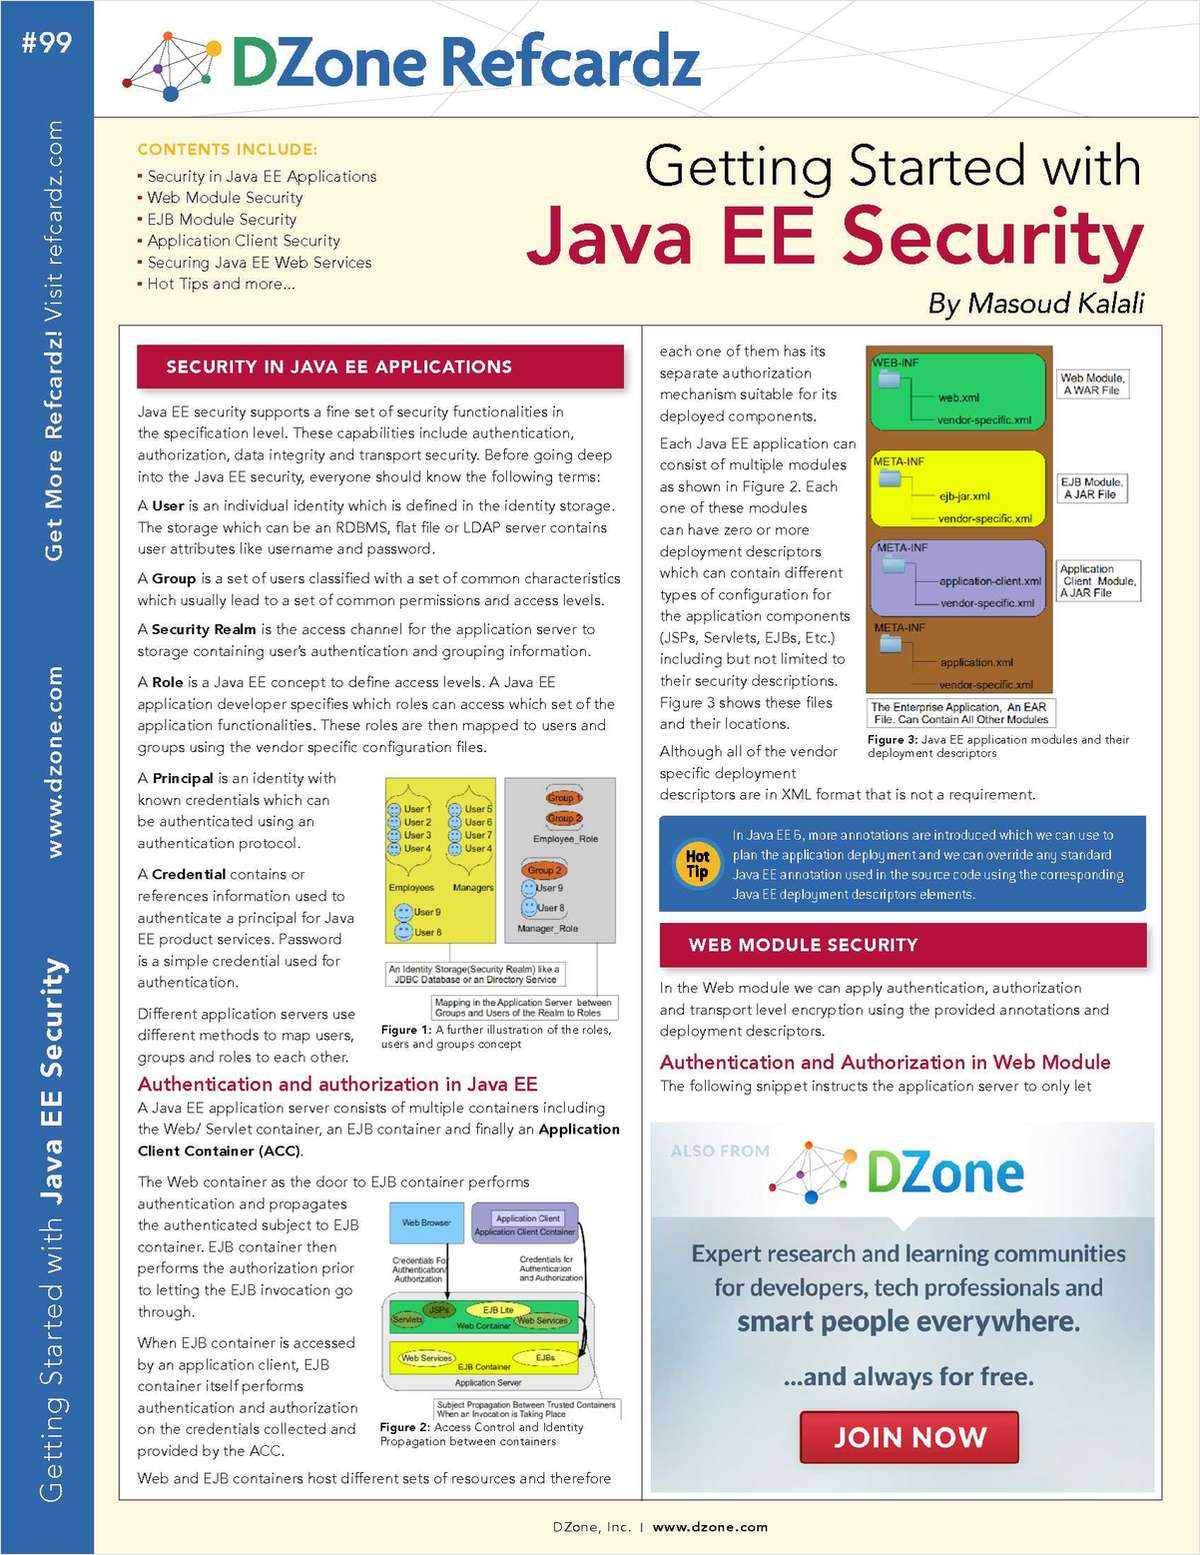 Getting Started with Java EE Security